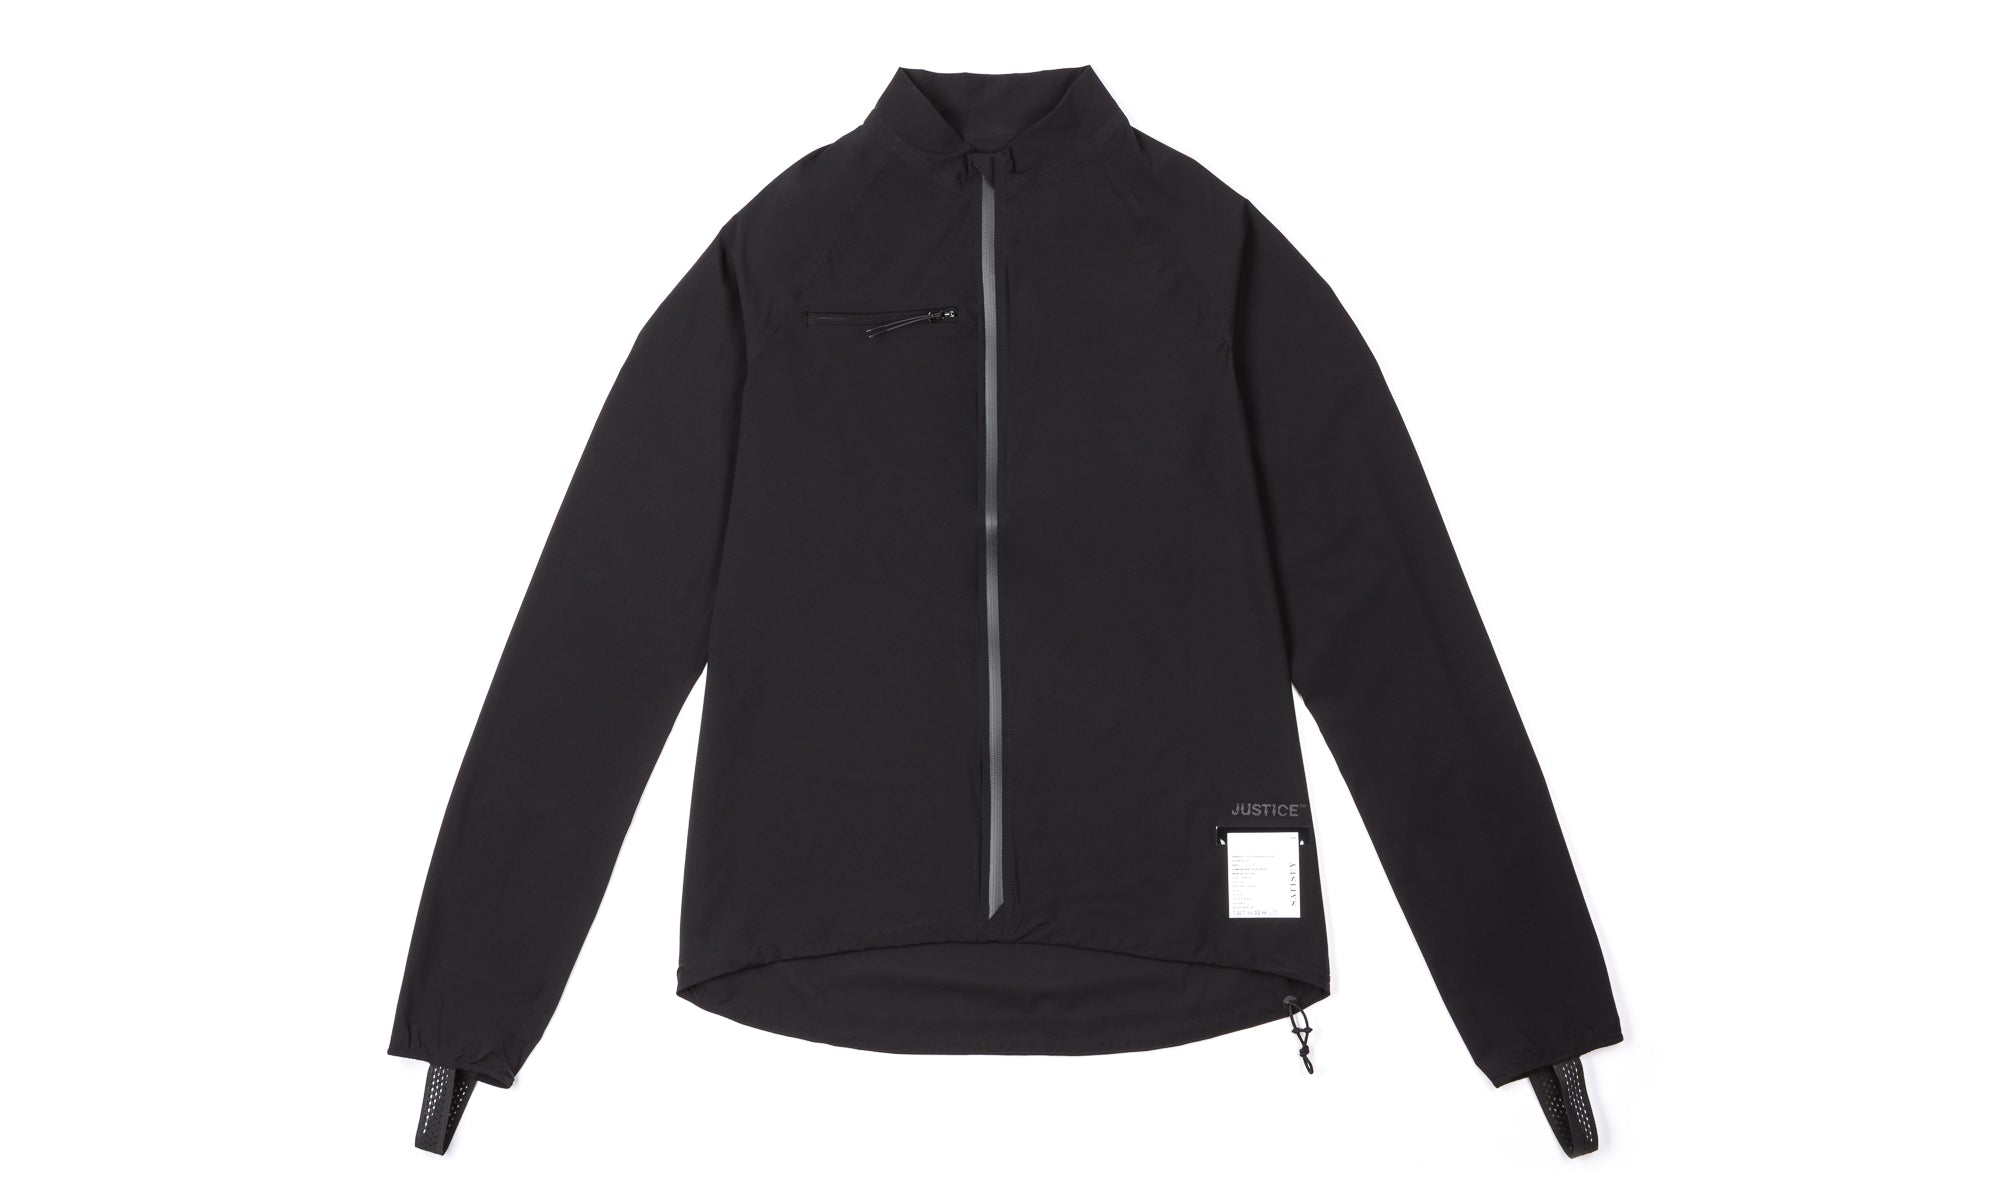 Justice Running Jacket - Front